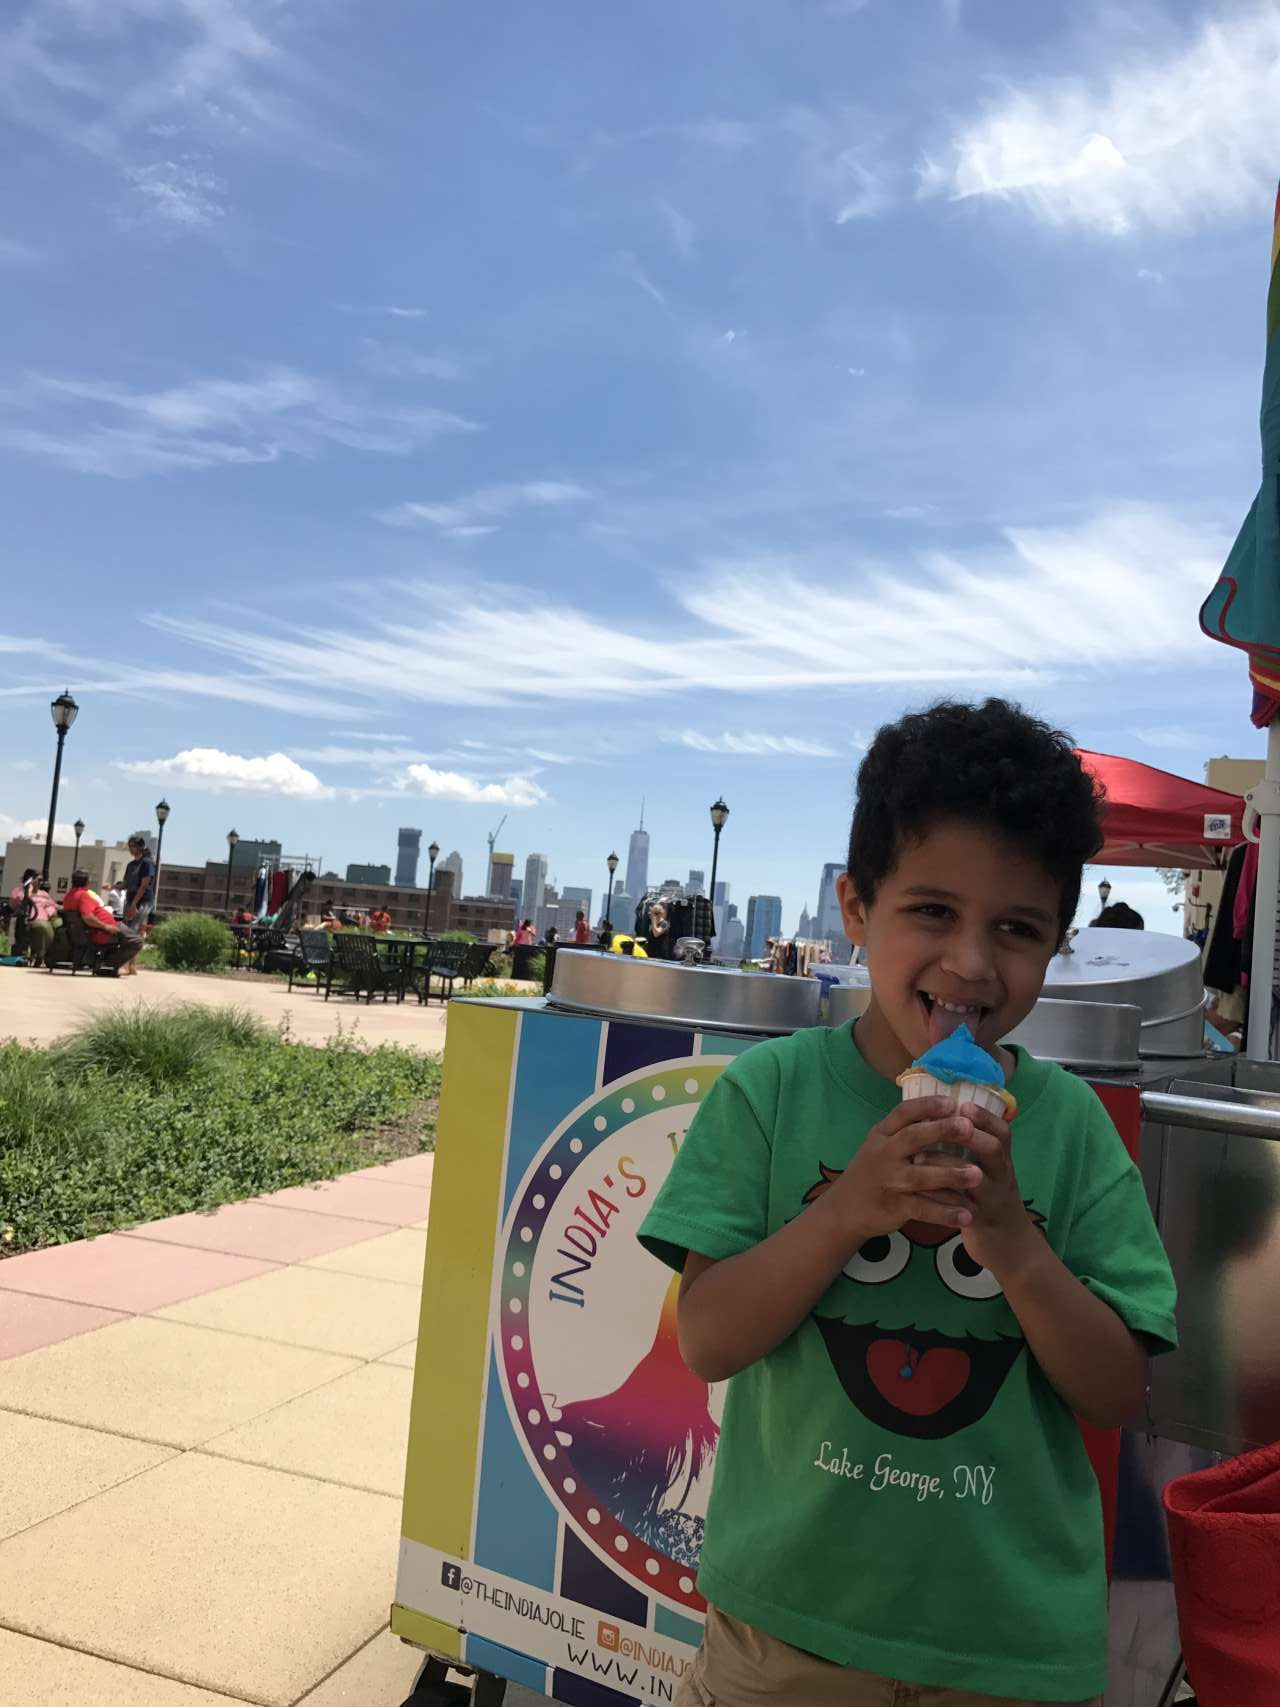 Litle boy with oscar the ground tshirt standing in front of India's Italian Ice cart smiling holidng a blue Italian Ice in his hand with views of NYC in the background